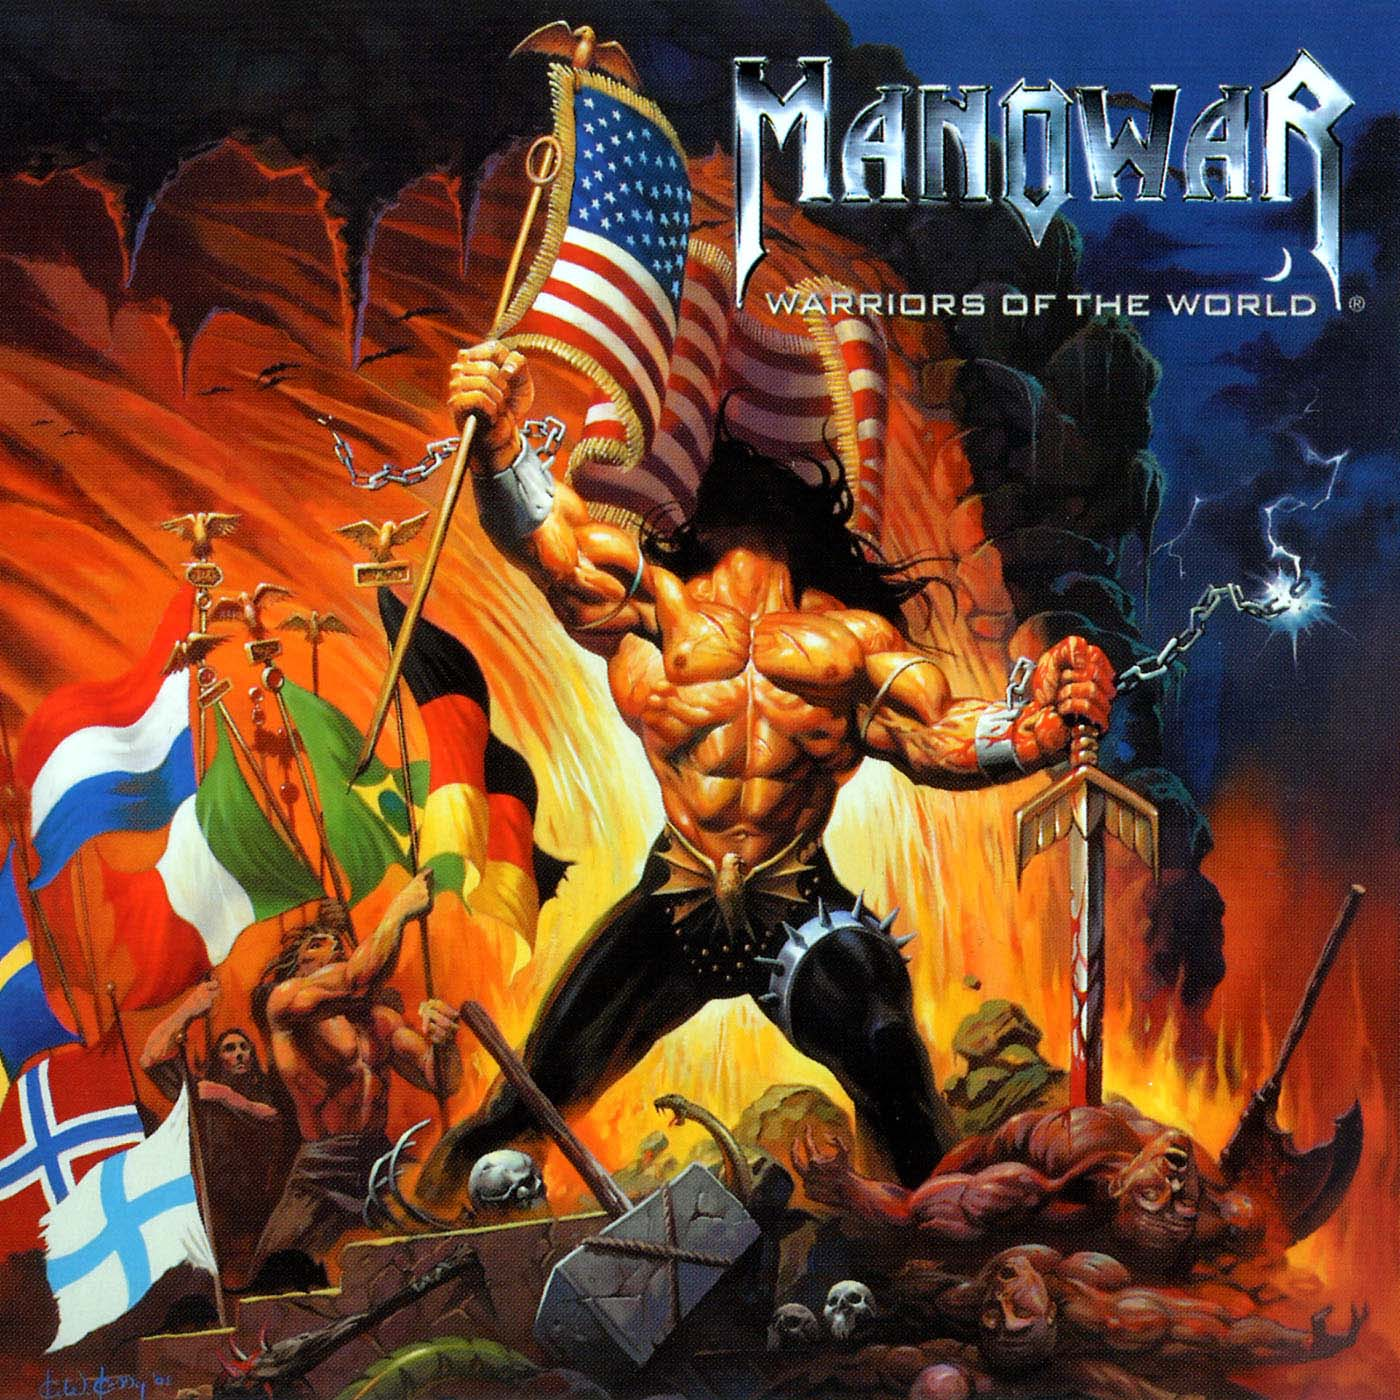 http://1.bp.blogspot.com/_uaSIp_1tsPY/SzublZl65iI/AAAAAAAALpY/x4lMNHkzix8/s1600/Manowar-Warriors_Of_The_World-Frontal.jpg